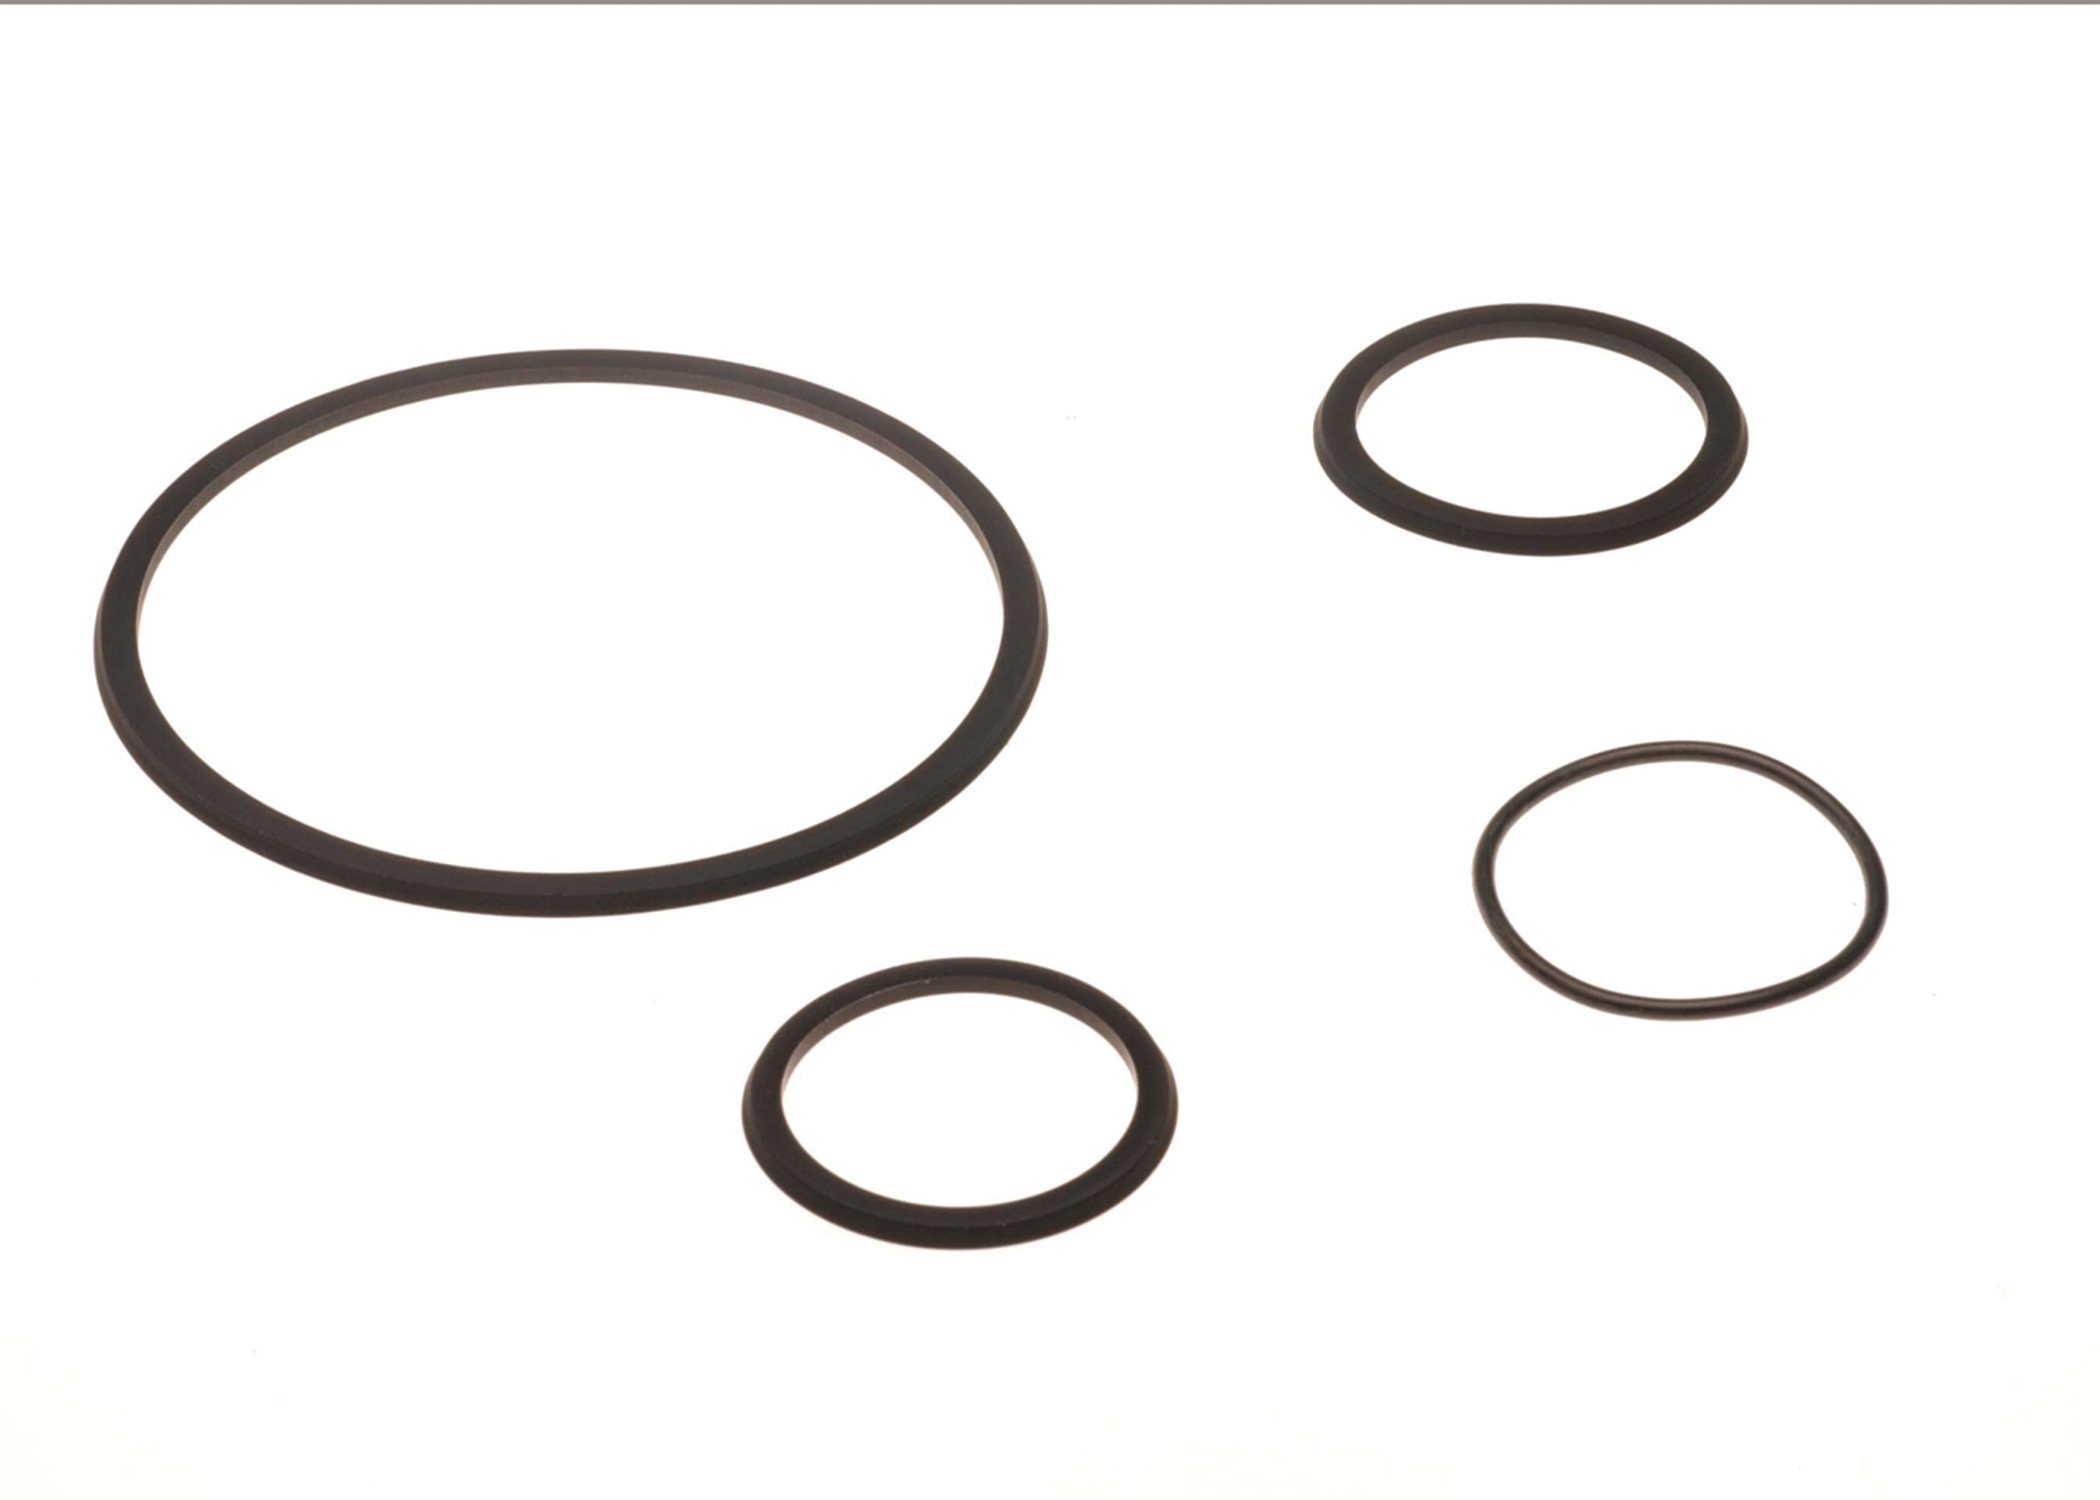 ACDELCO OE SERVICE - Input Clutch & 3rd Clutch Piston Seal Kit - DCB 24211300